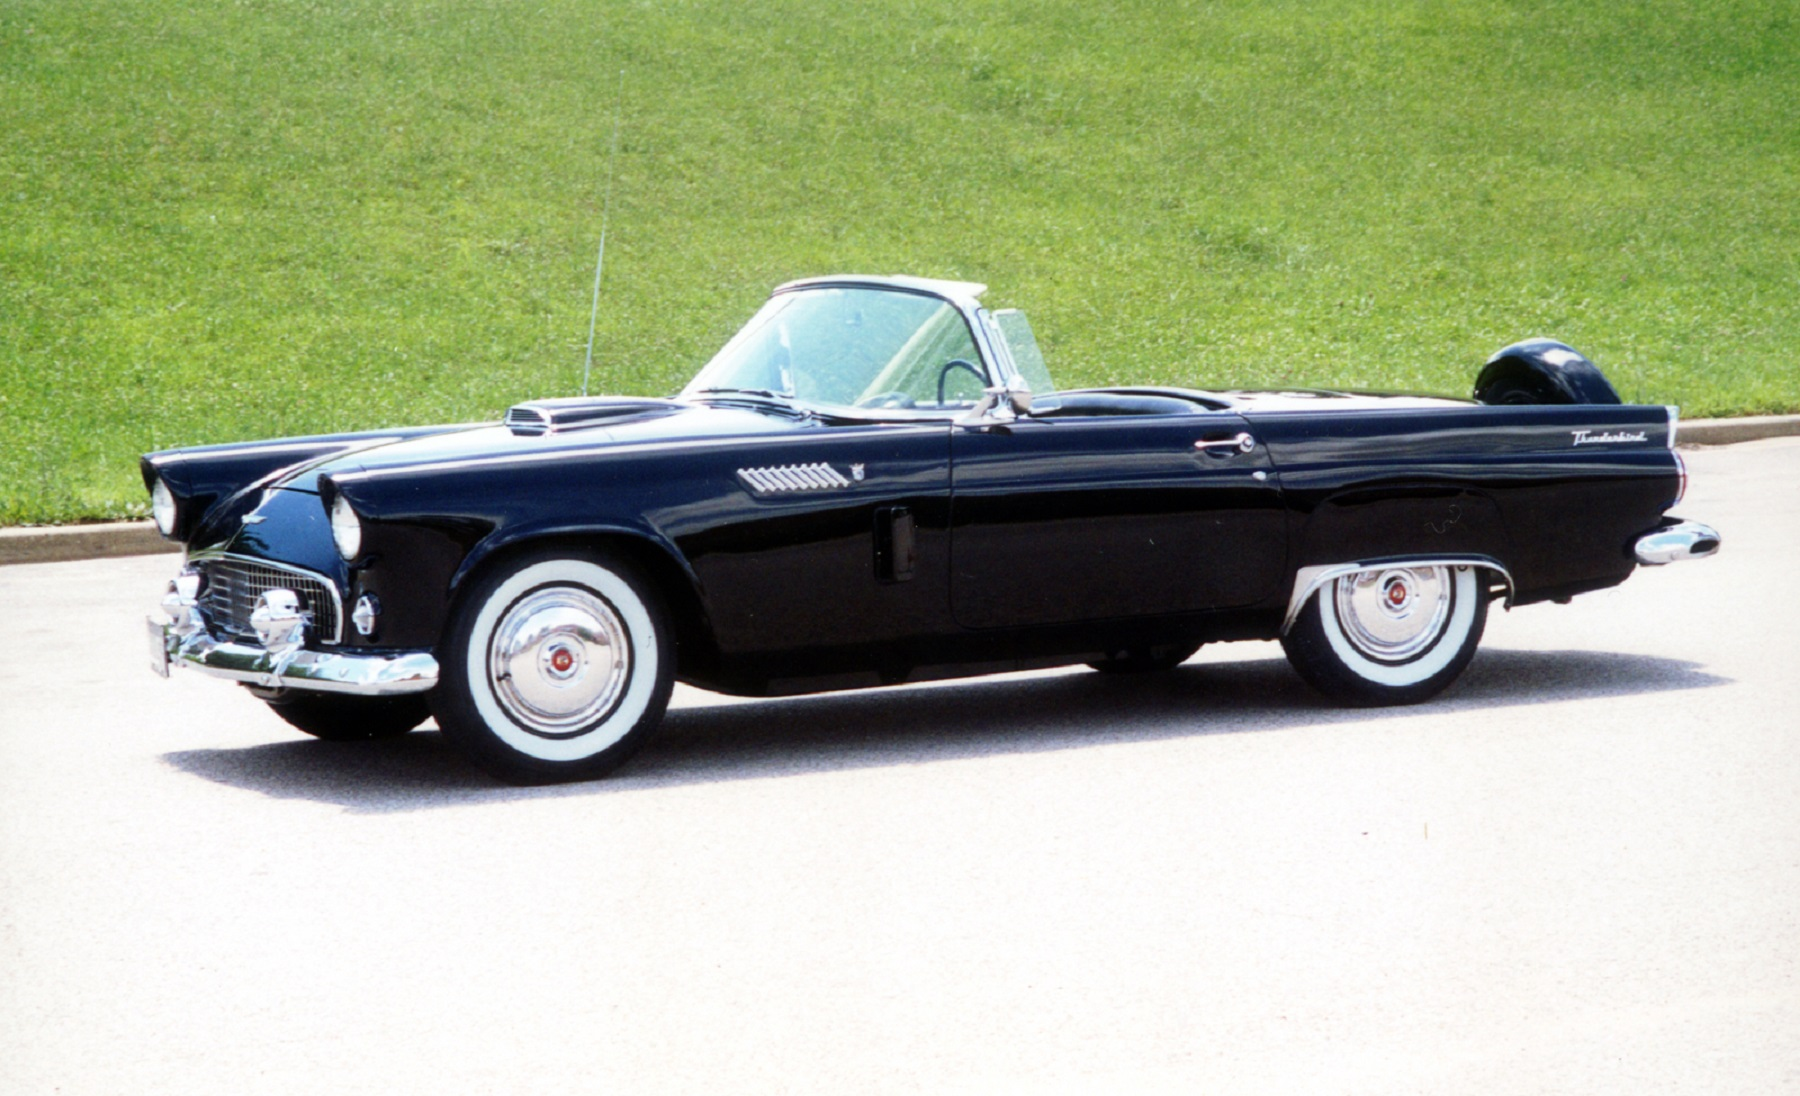 1956 Ford Thunderbird goes back to brand new quality